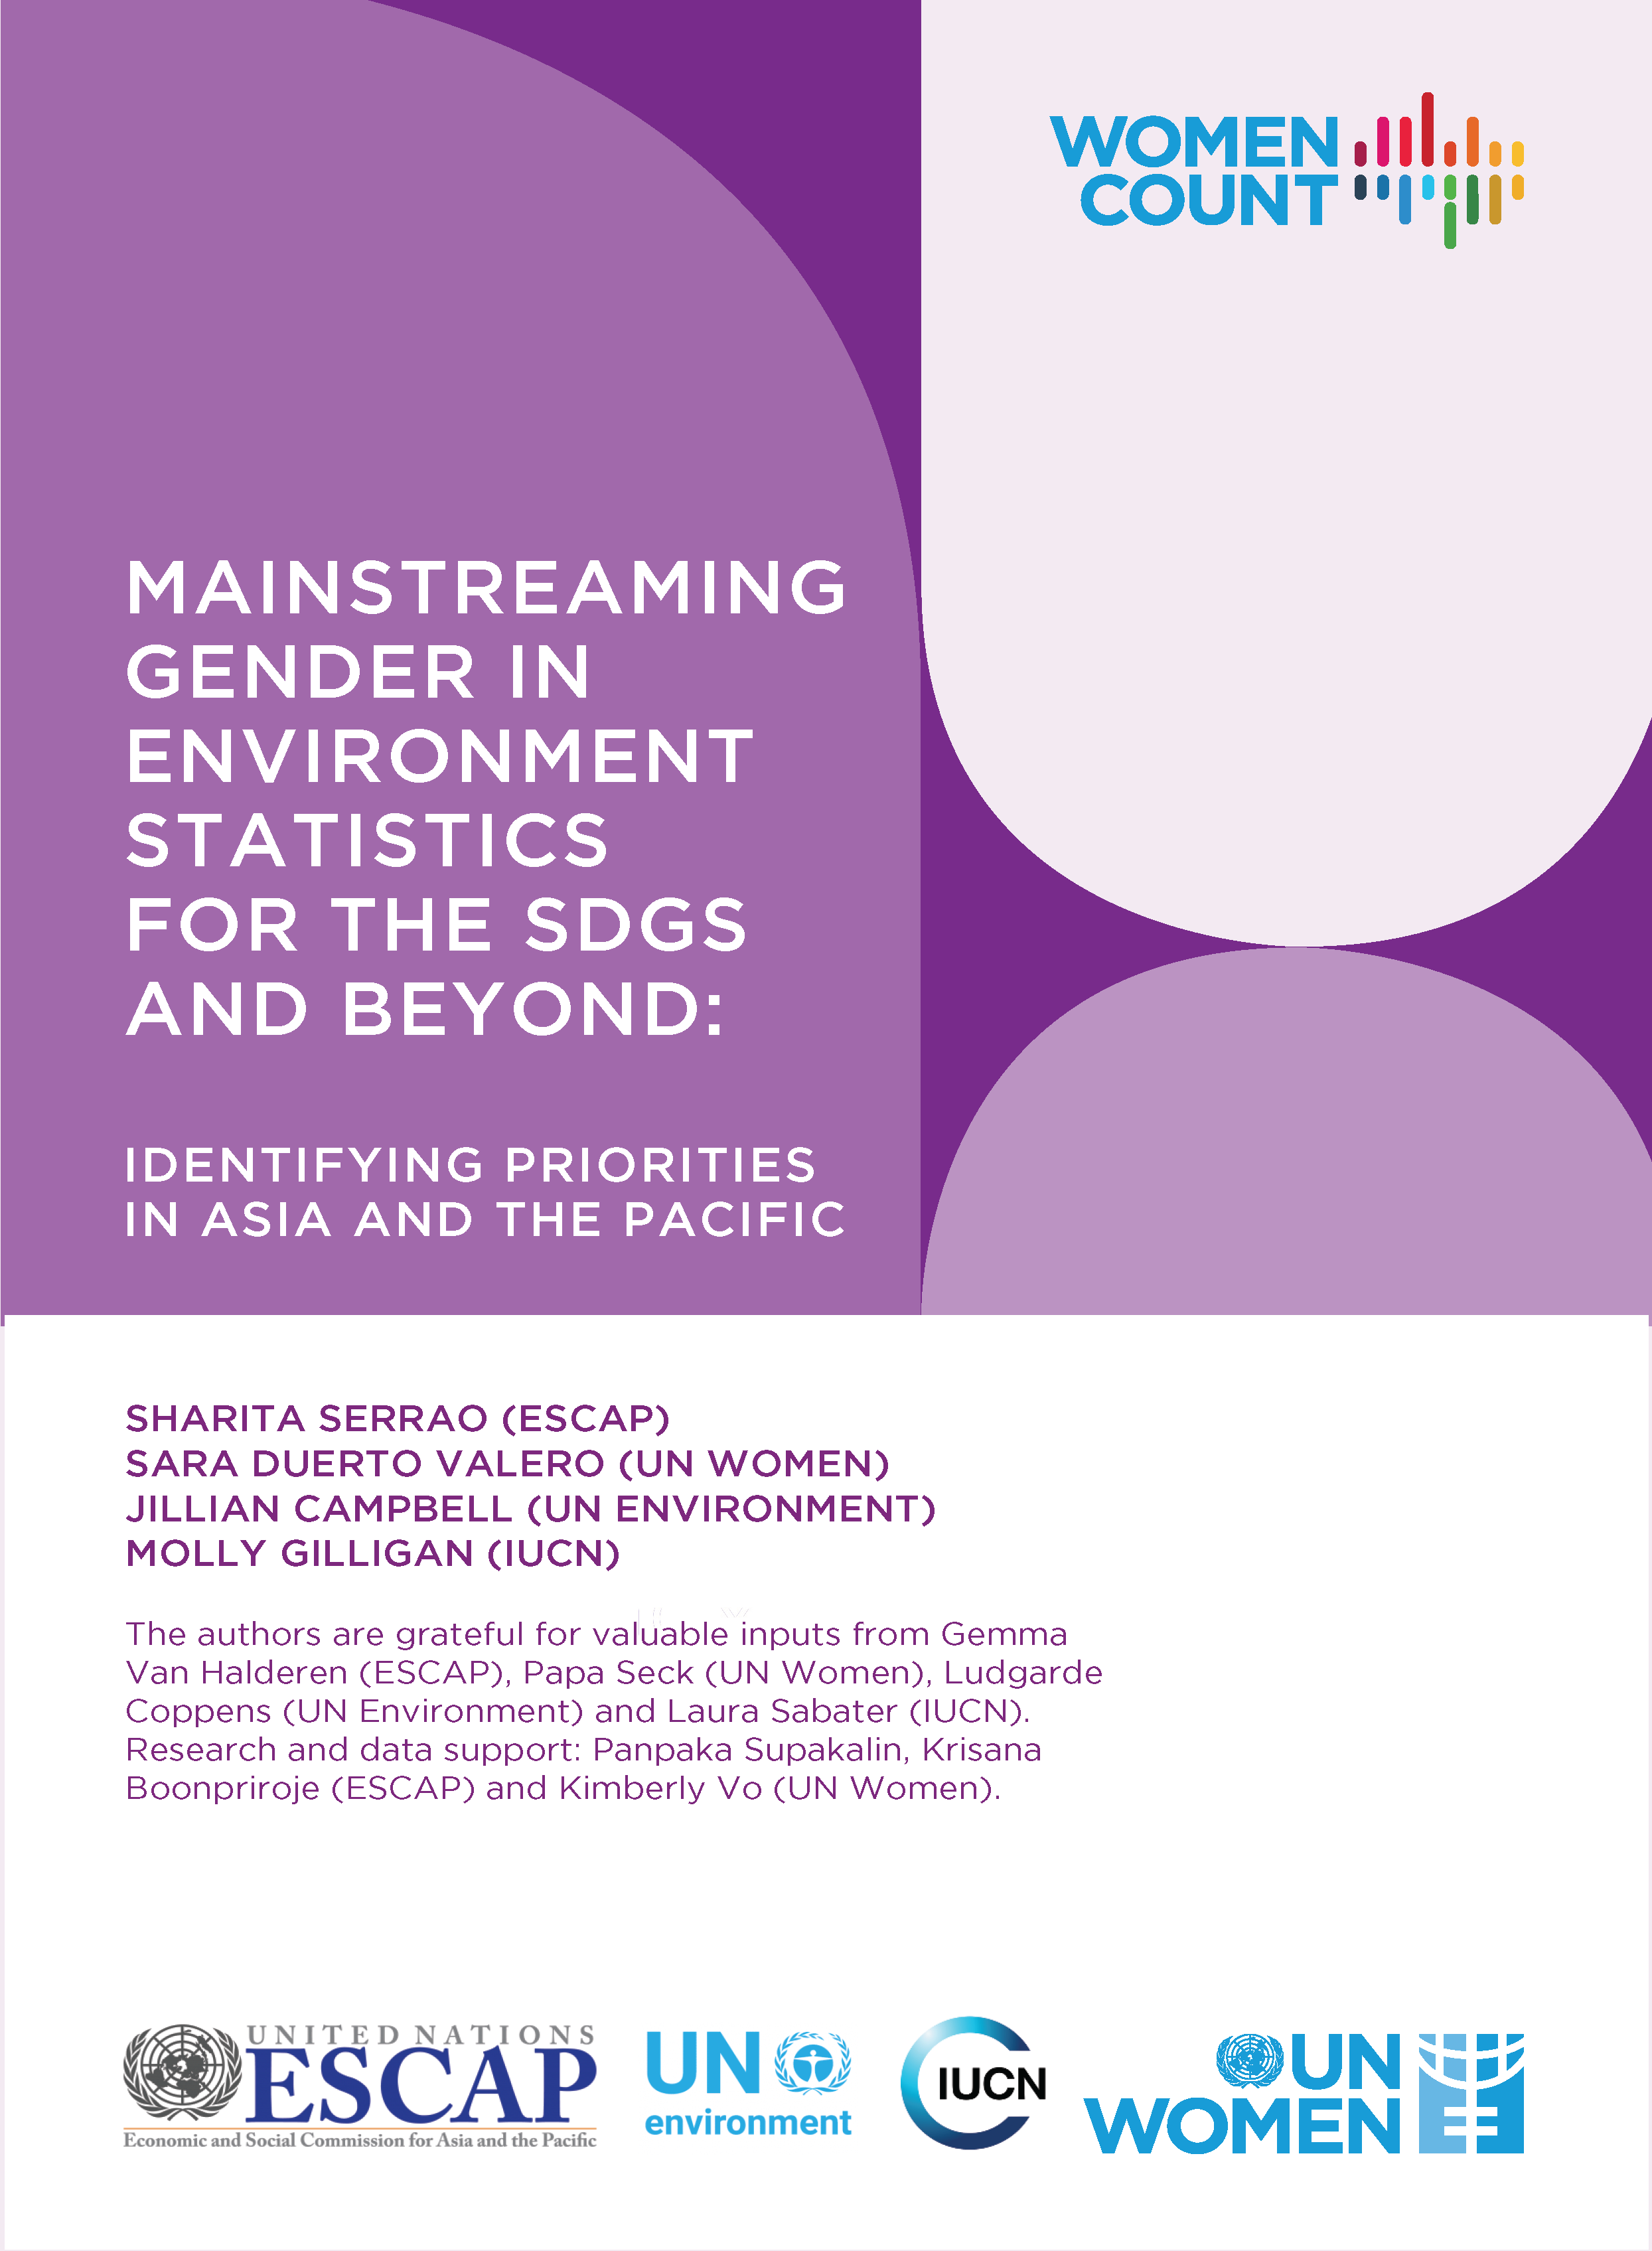 Mainstreaming gender in environment statistics in Asia-Pacific